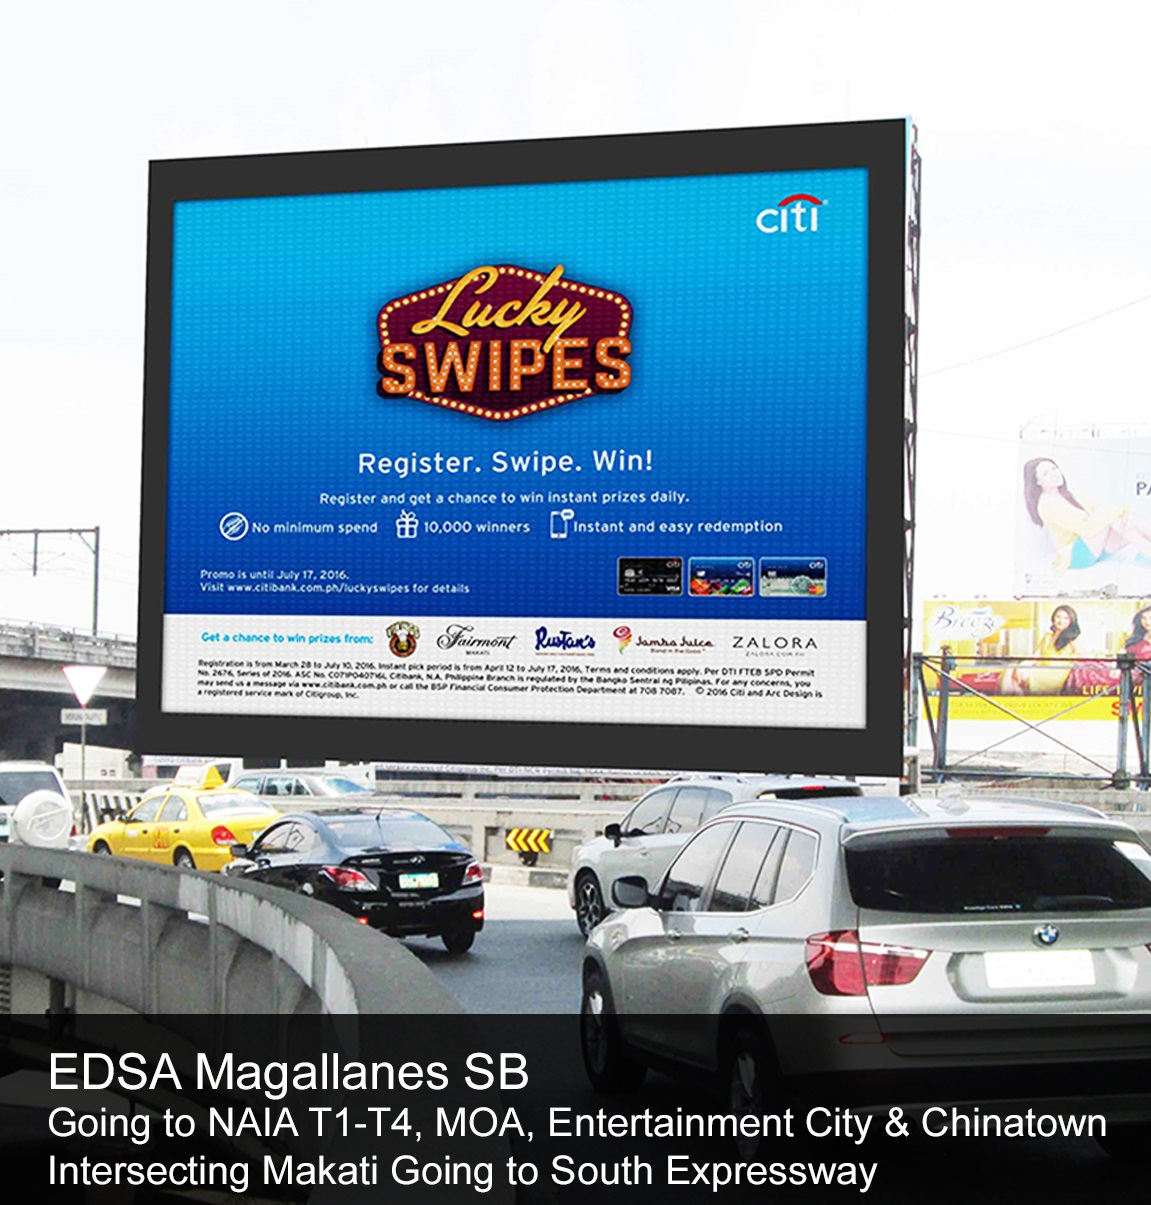 Dooh-ph-edsa-magallanes-sb-led-billboard-in-edsa.jpg